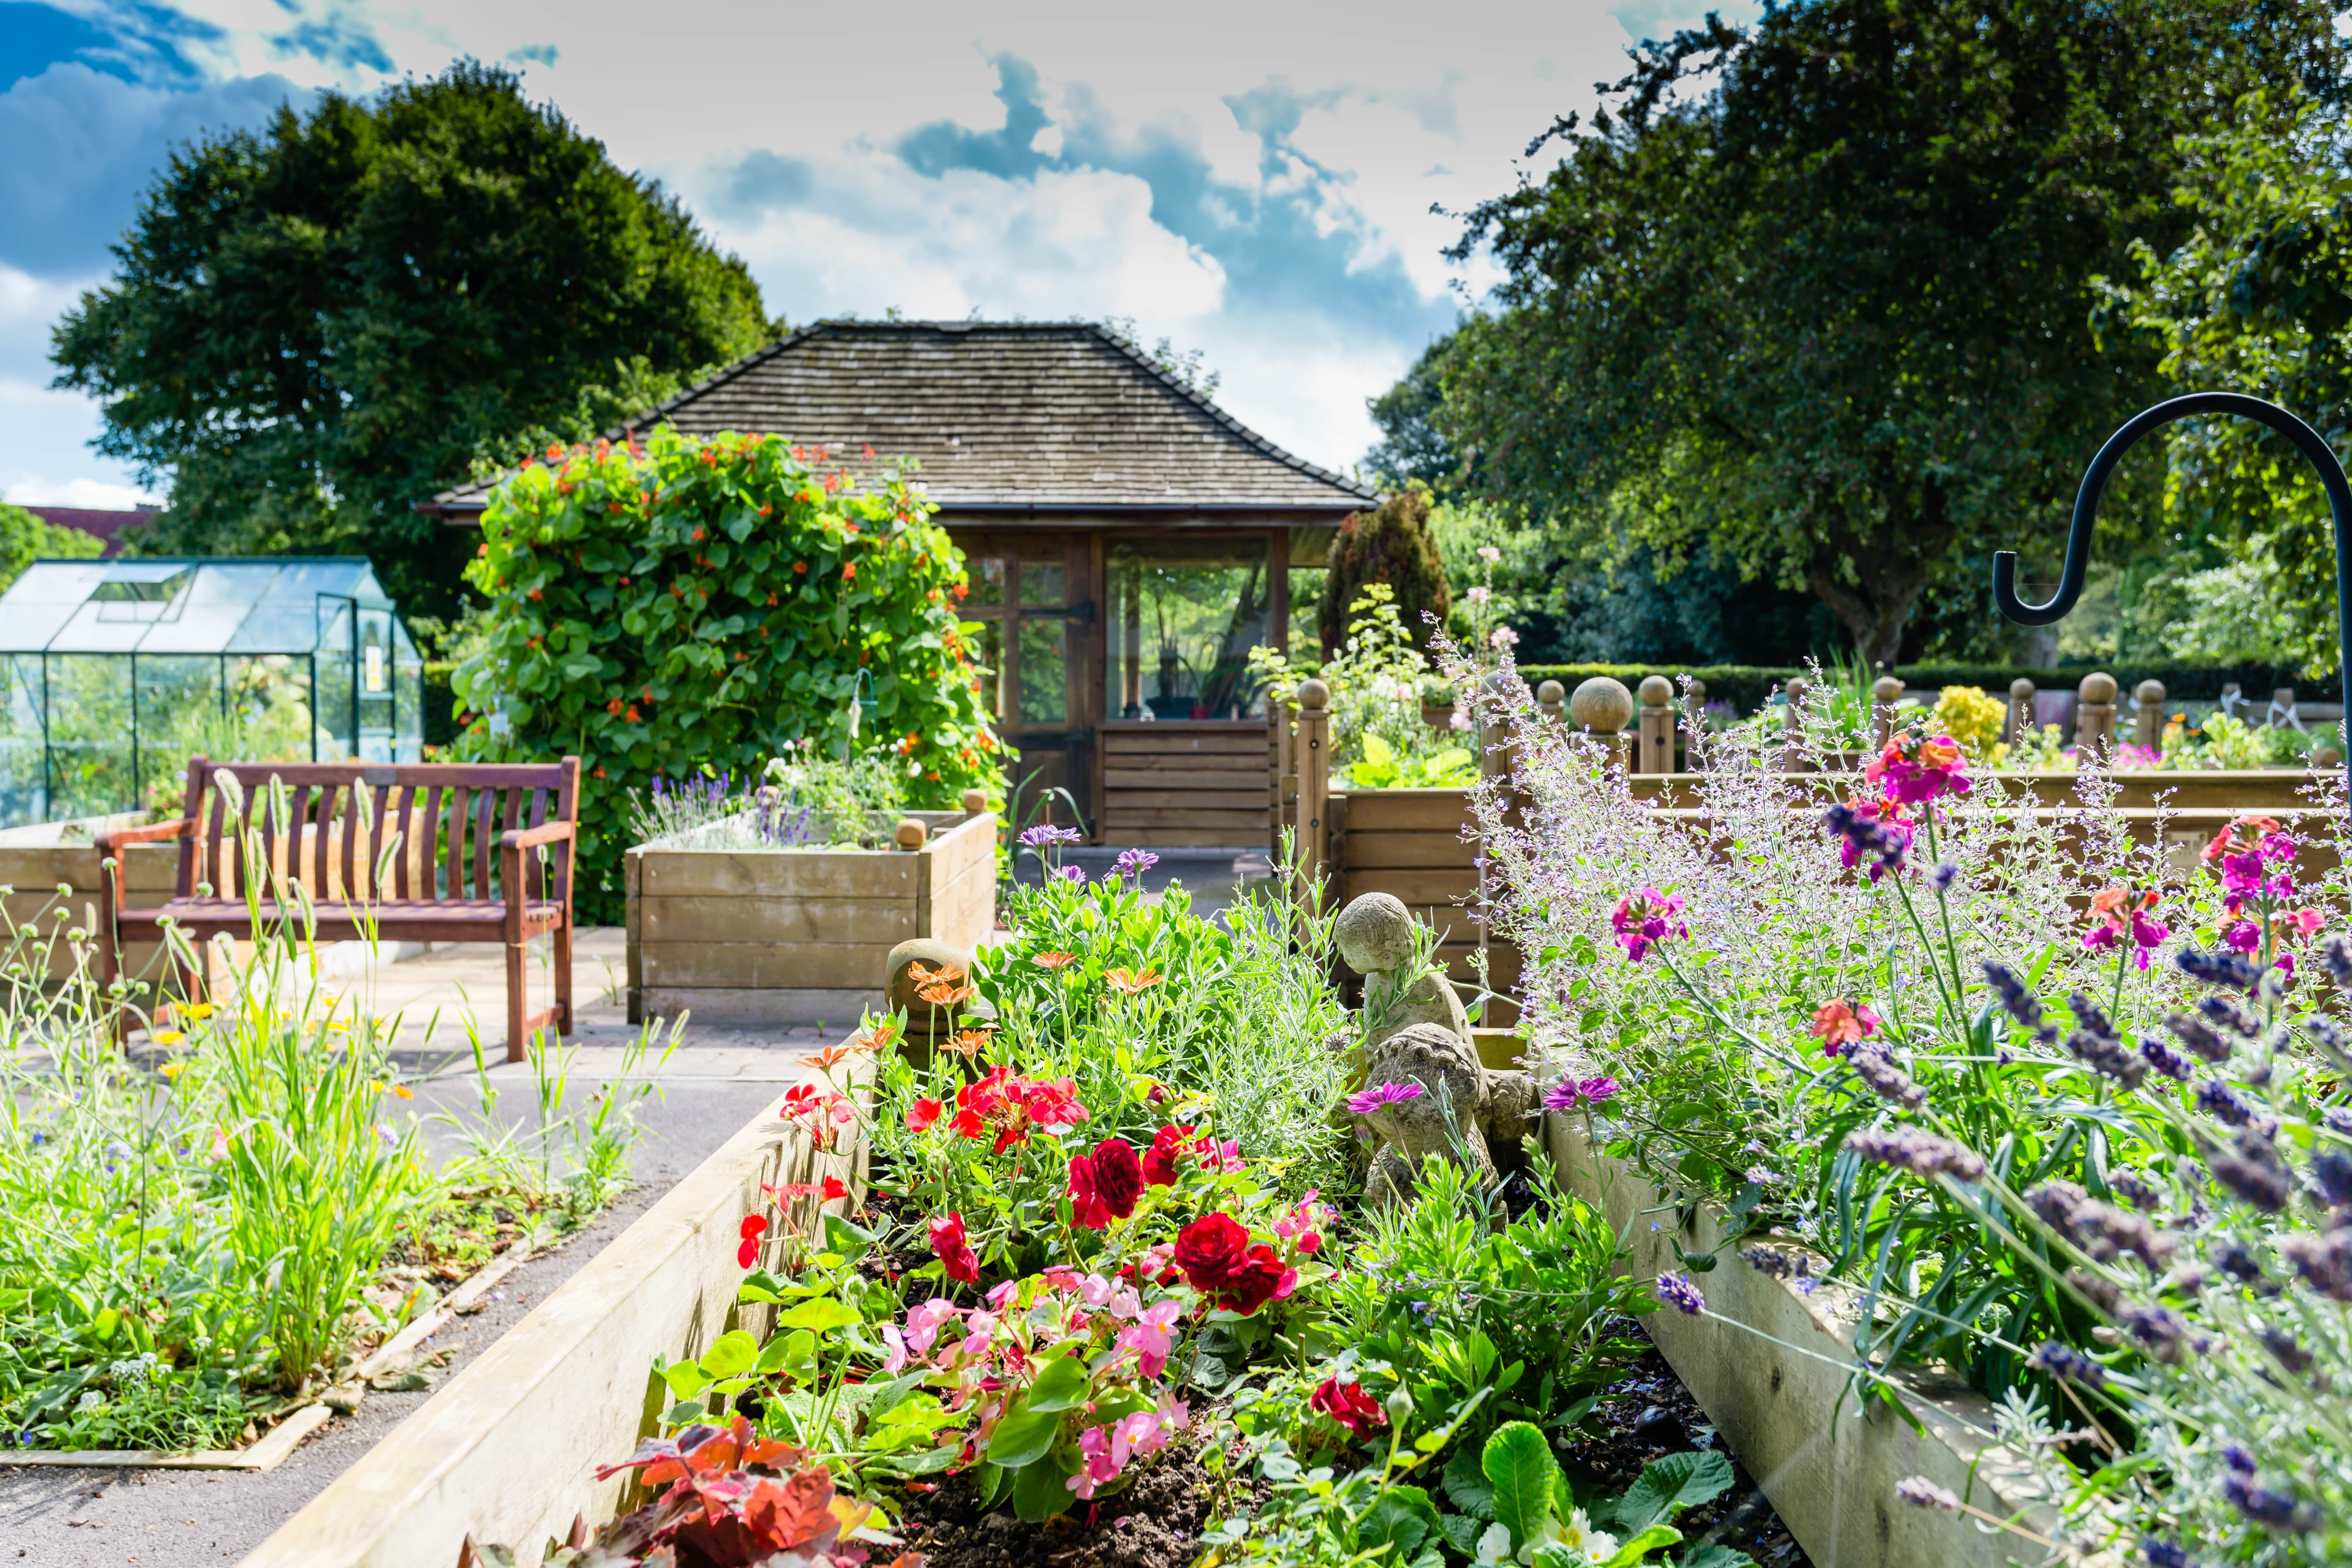 Garden and allotments within a retirement community in Westbury-on-Trym, Bristol. Communal areas are a large thing to consider when asking 'what is a retirement village?'